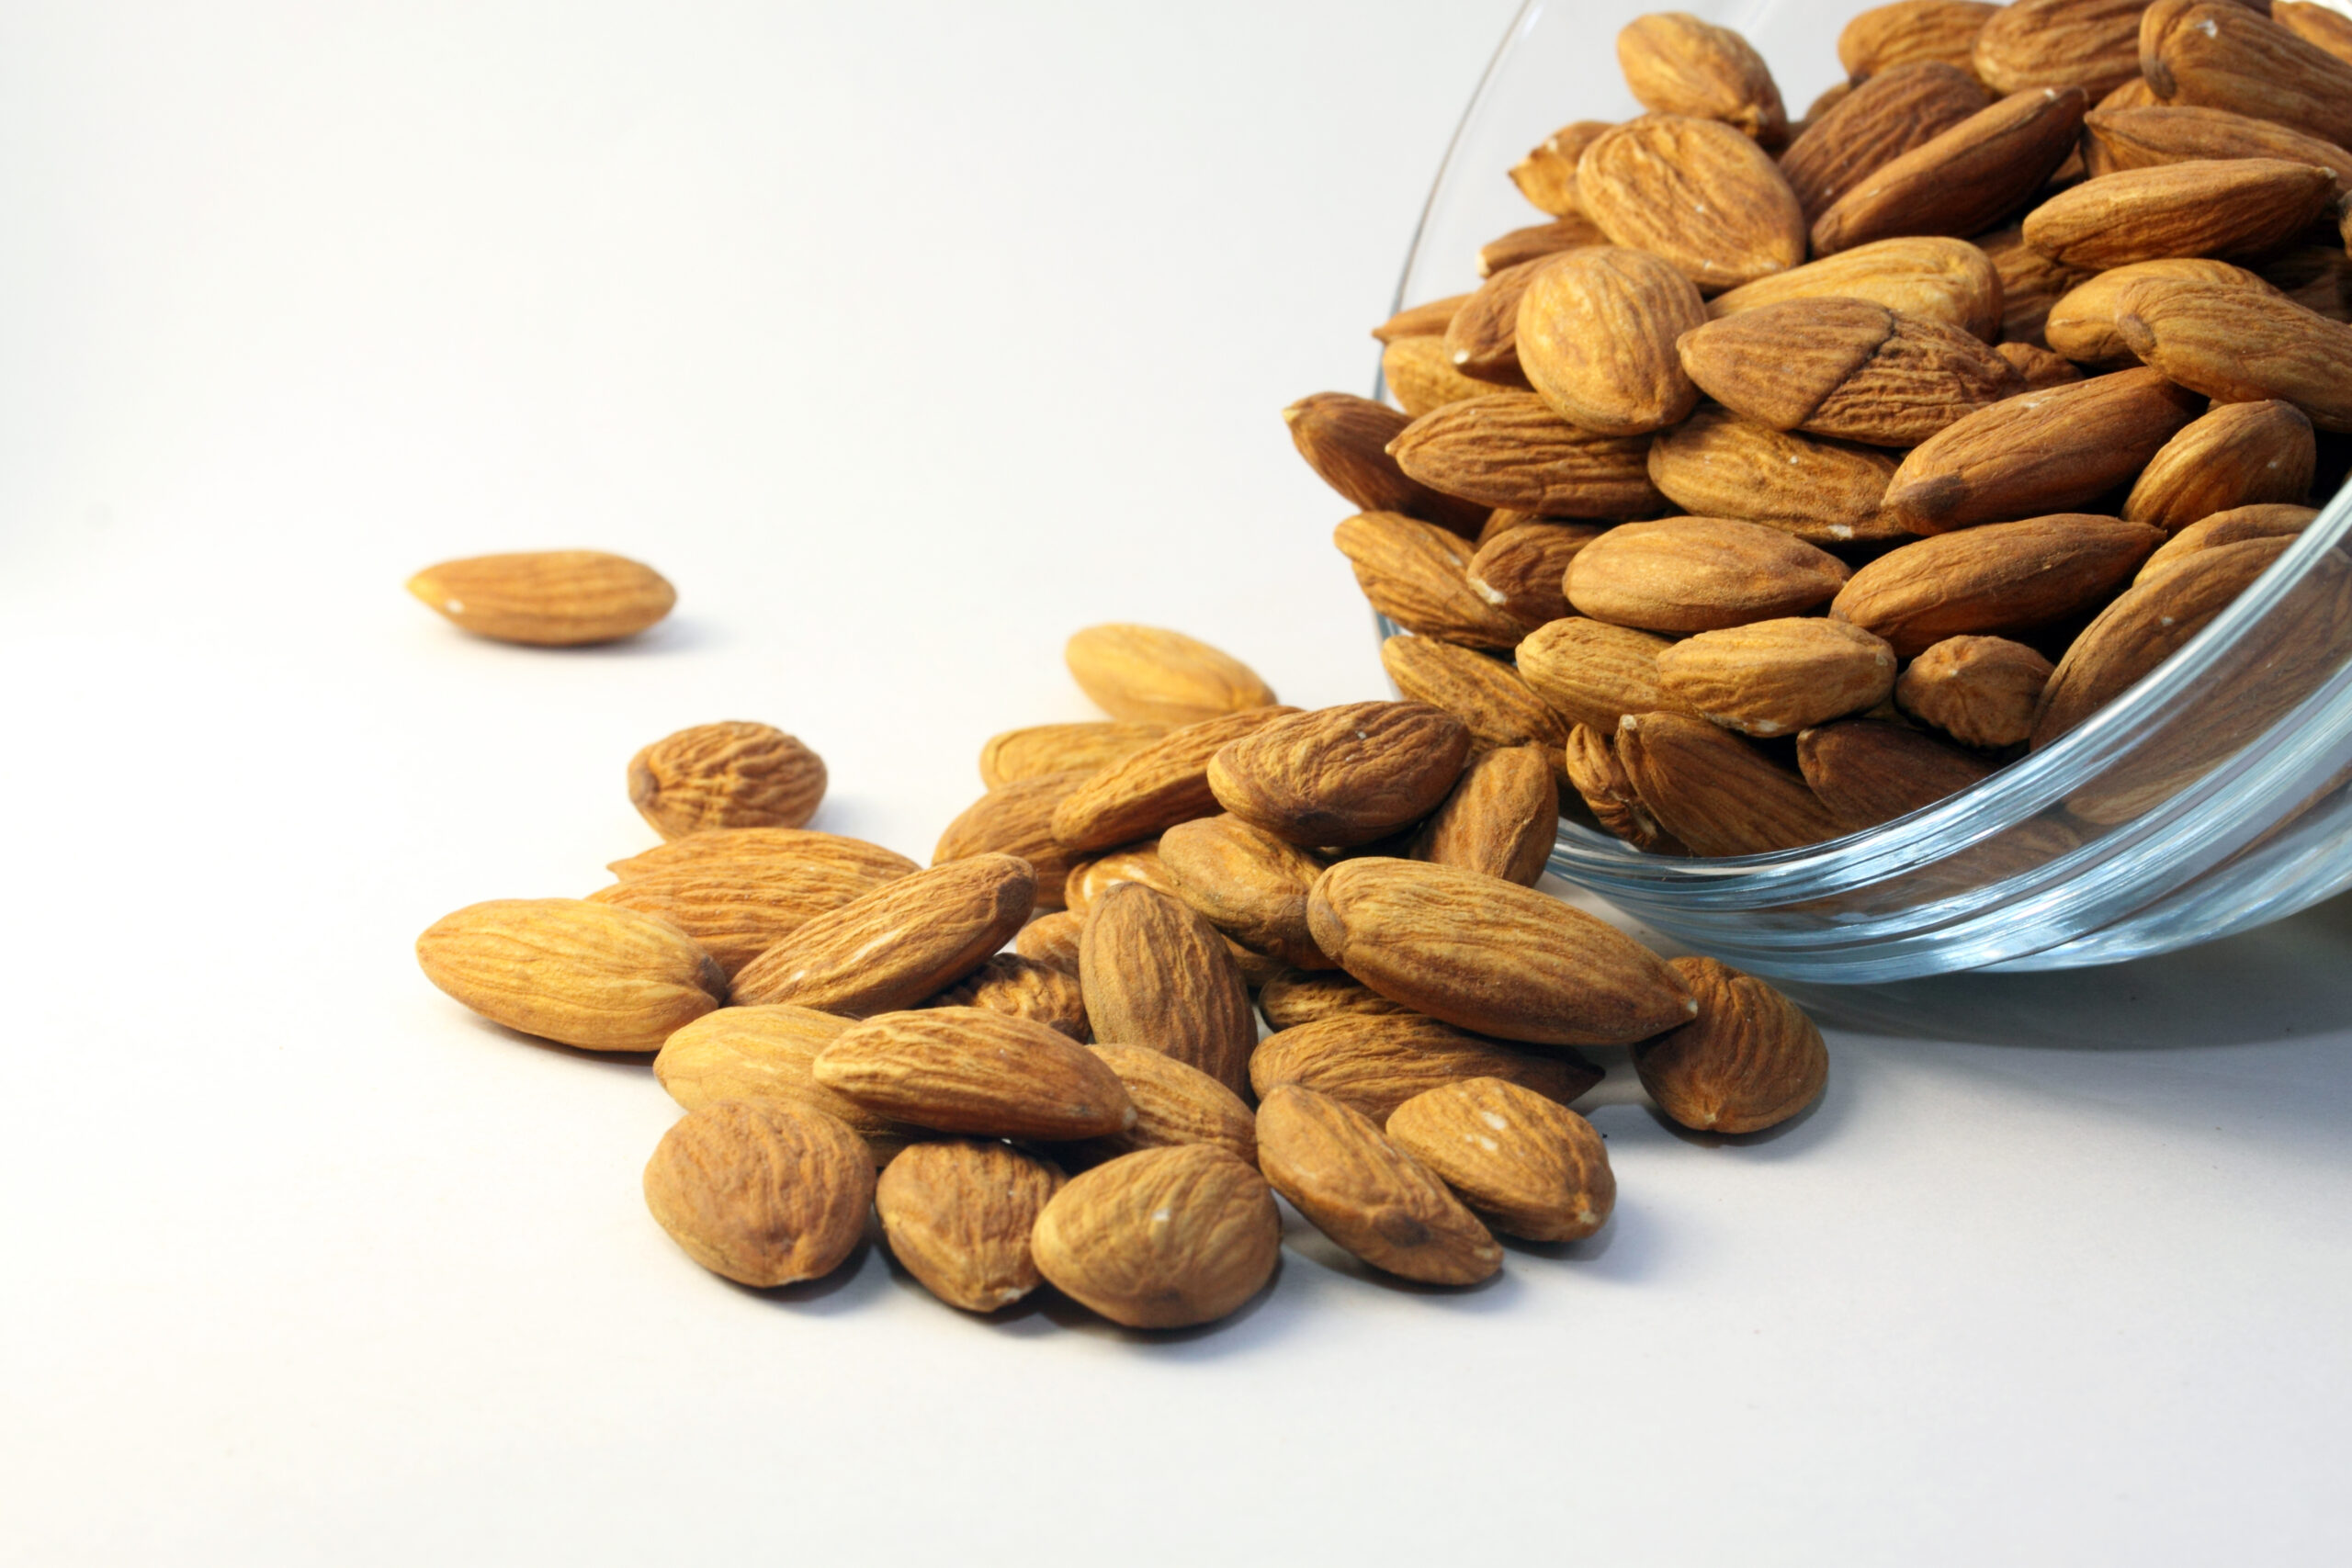 Image of almonds pouring from a glass bowl.